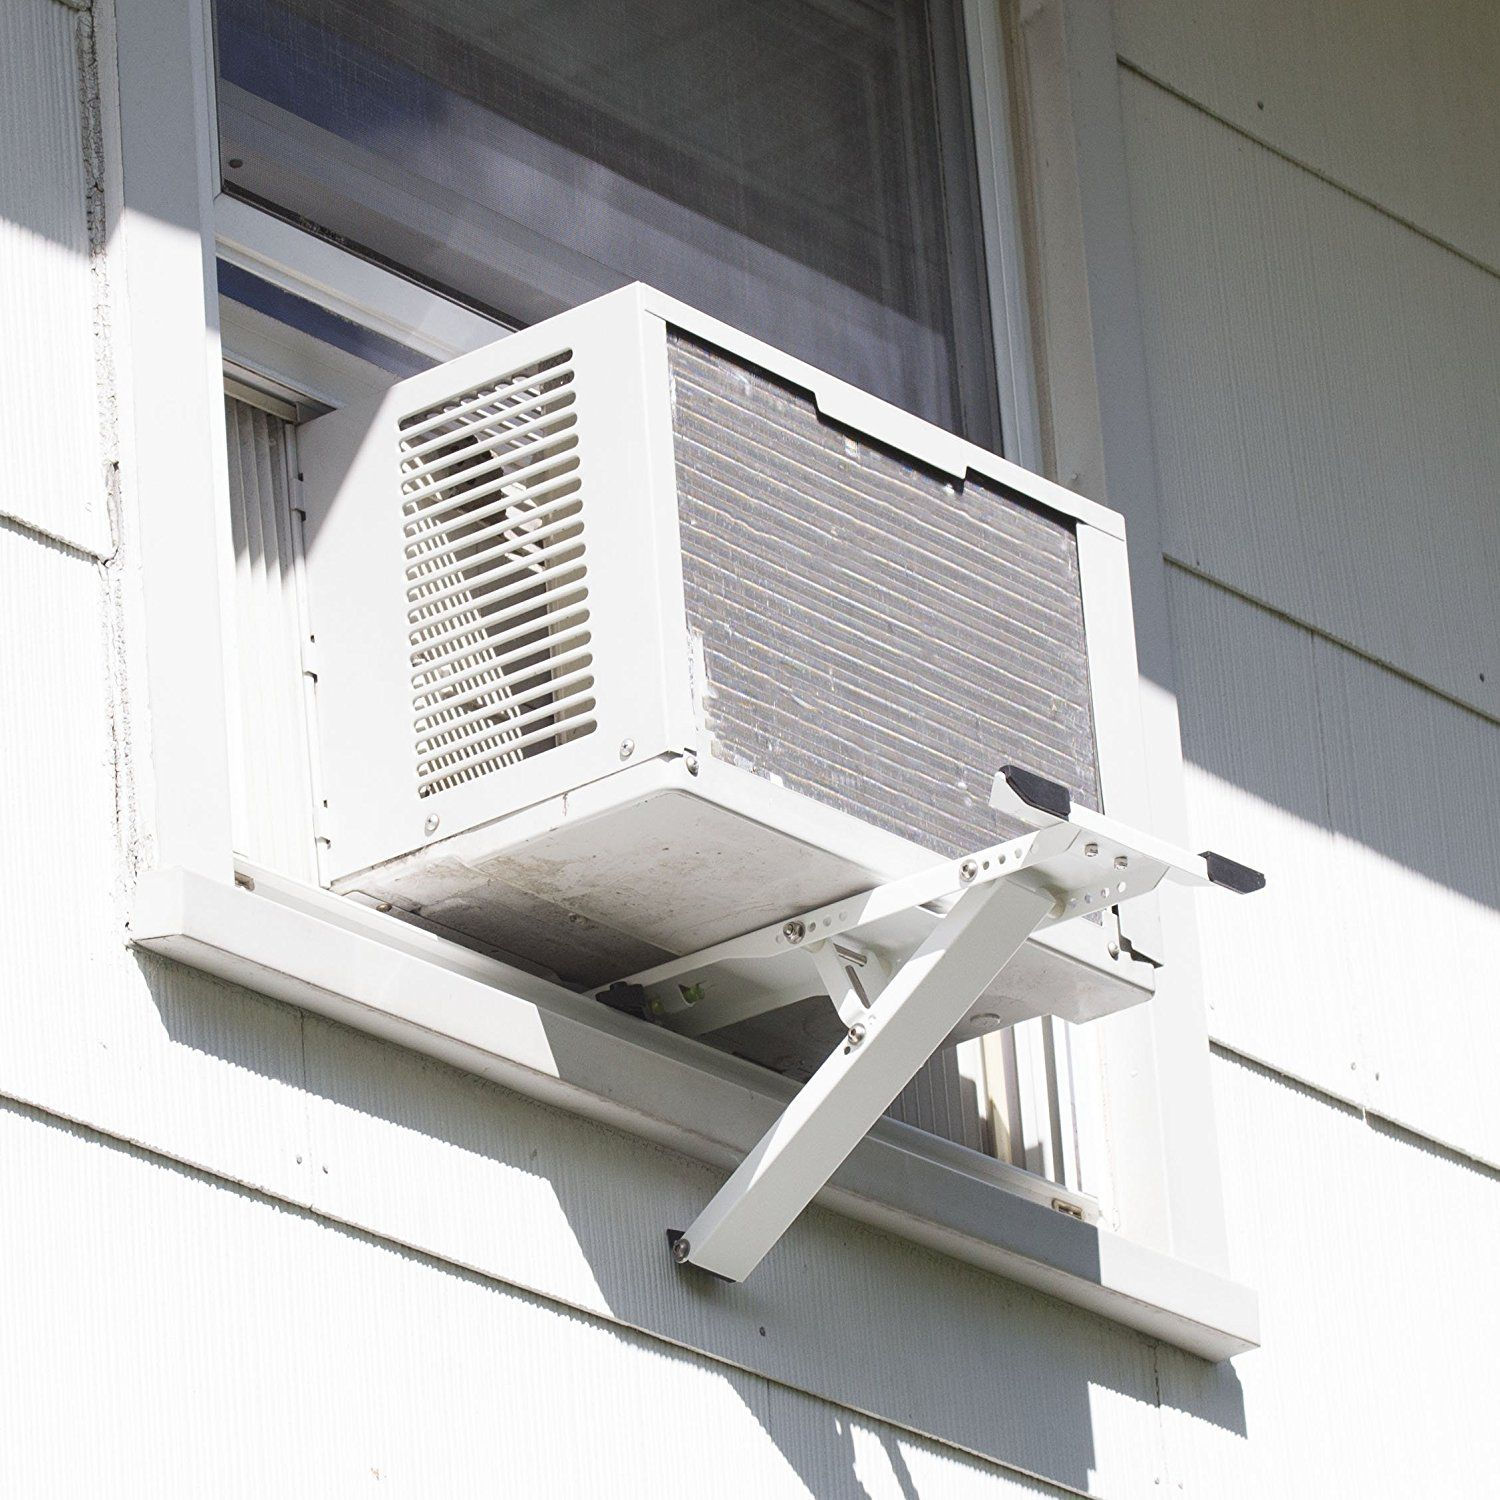 Amazon Com Universal Heavy Duty Window Air Conditioner Ac Support Bracket Up To 165 Lbs Designed For 10 000 To Window Air Conditioner Air Conditioner Design